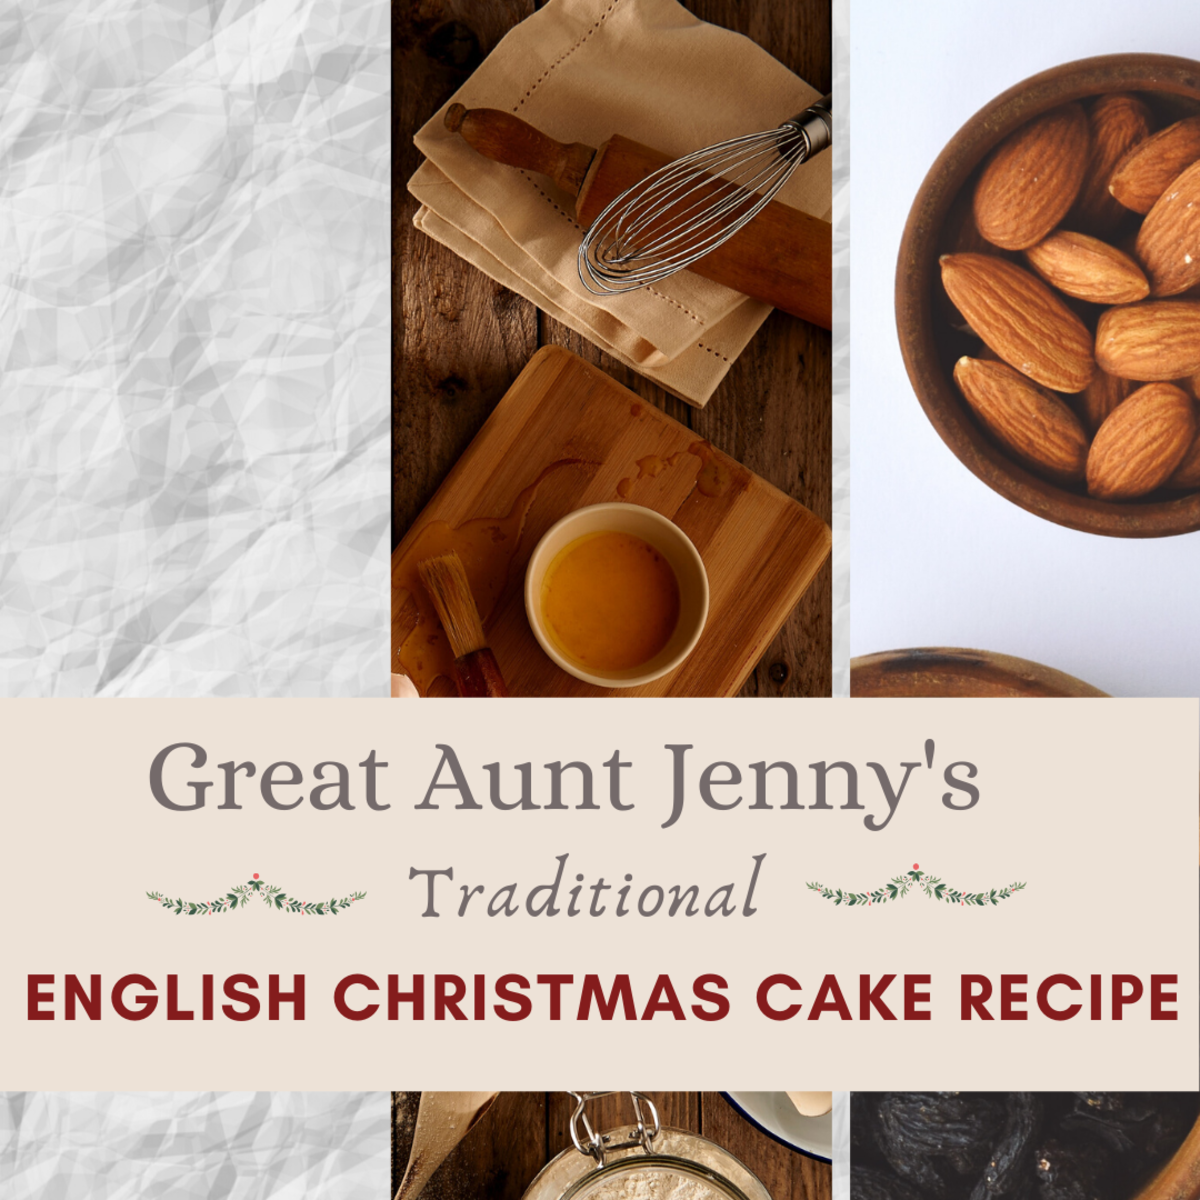 A Traditional English Christmas Cake Recipe